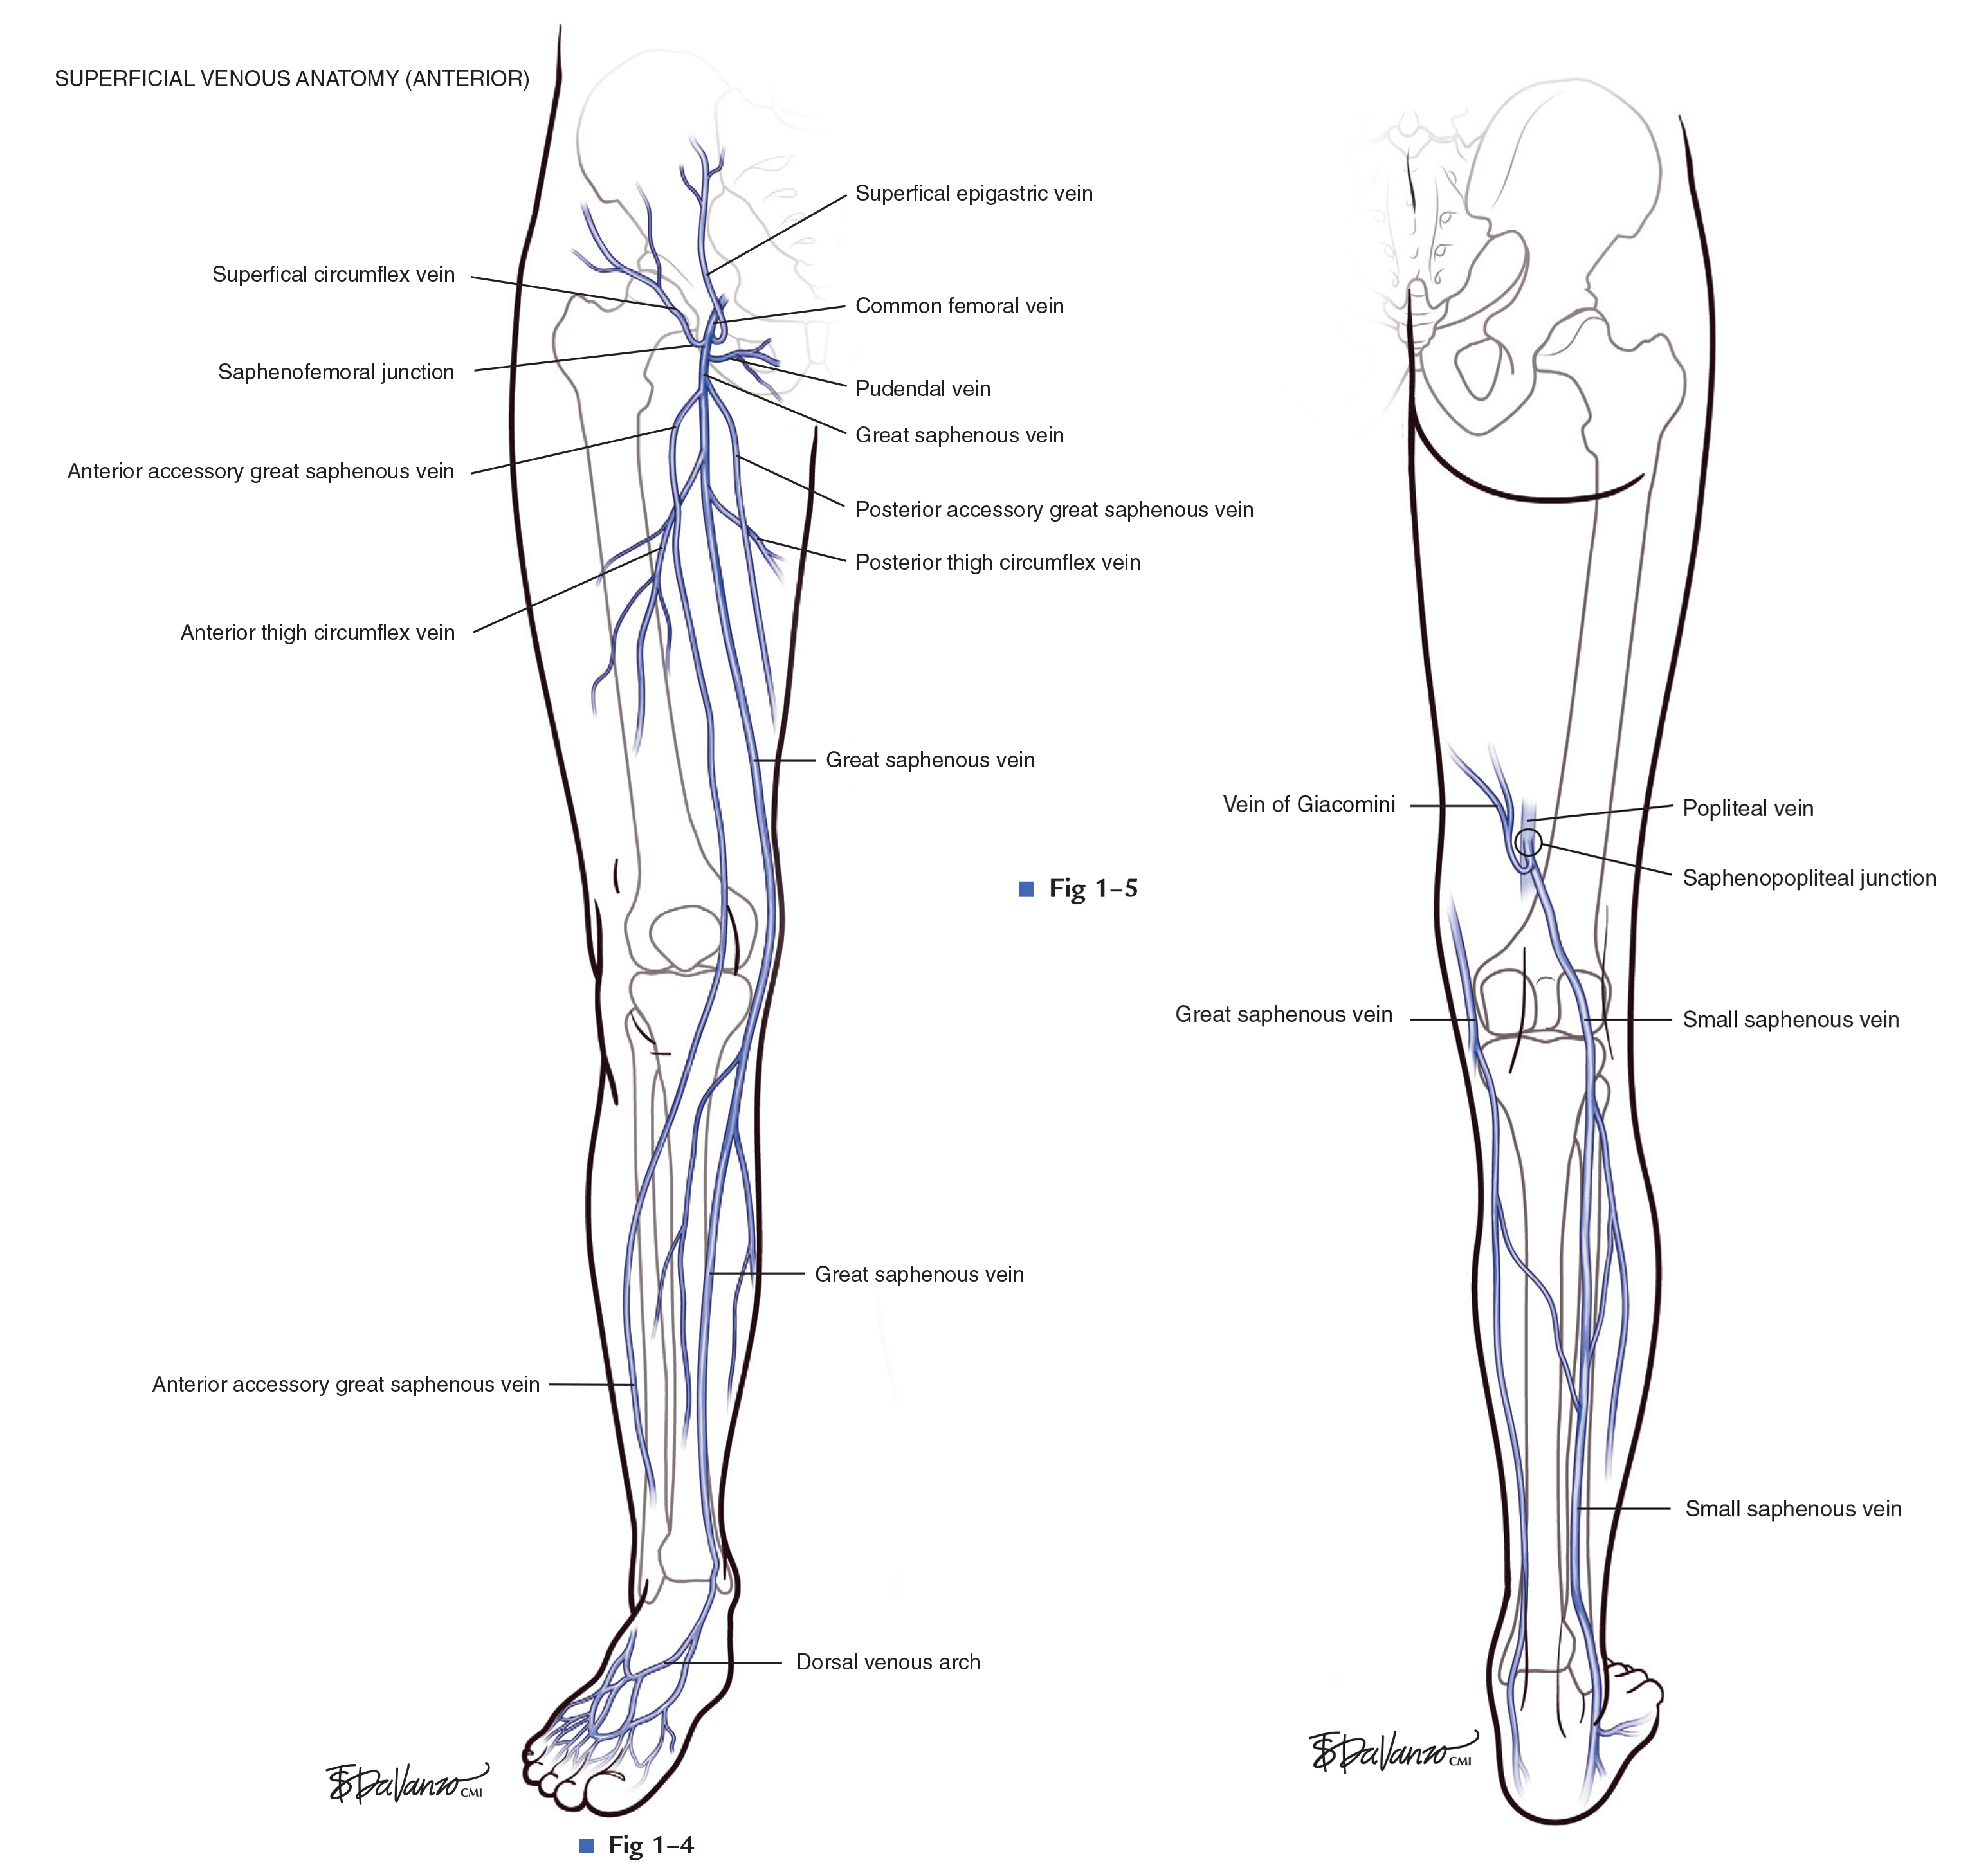 Lower Extremity Venous Anatomy (Atlas of Endovascular Venous Surgery)